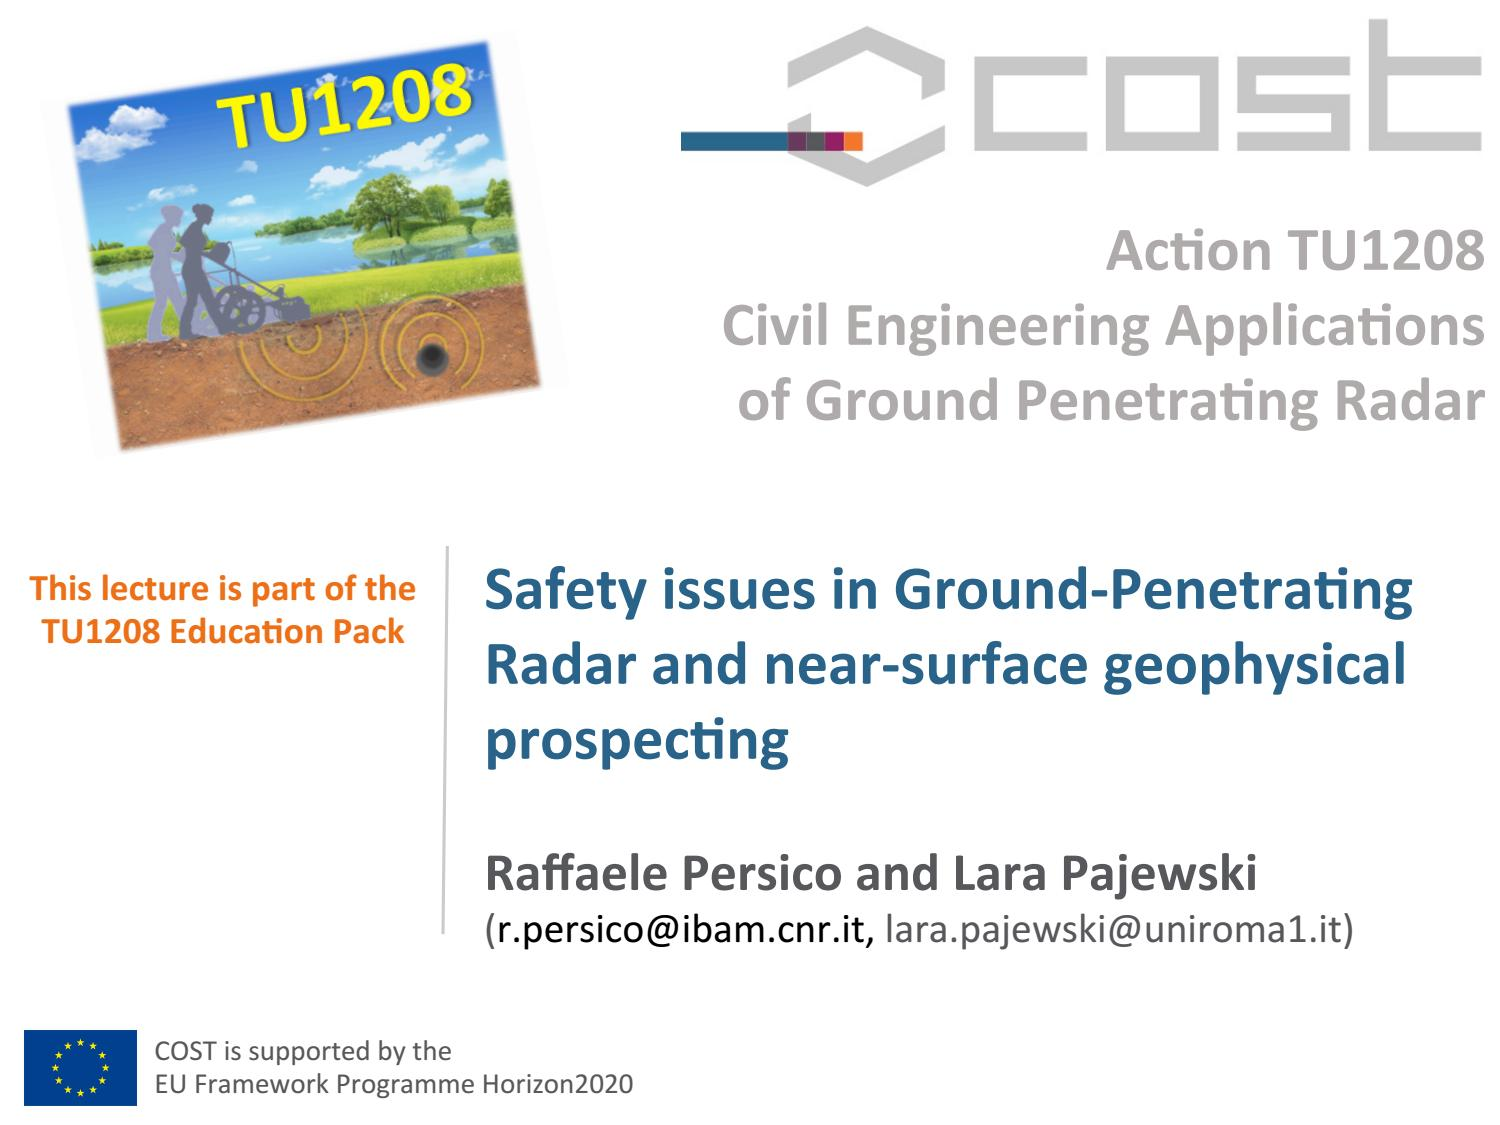 Safety issues in Ground Penetrating Radar and near-surface